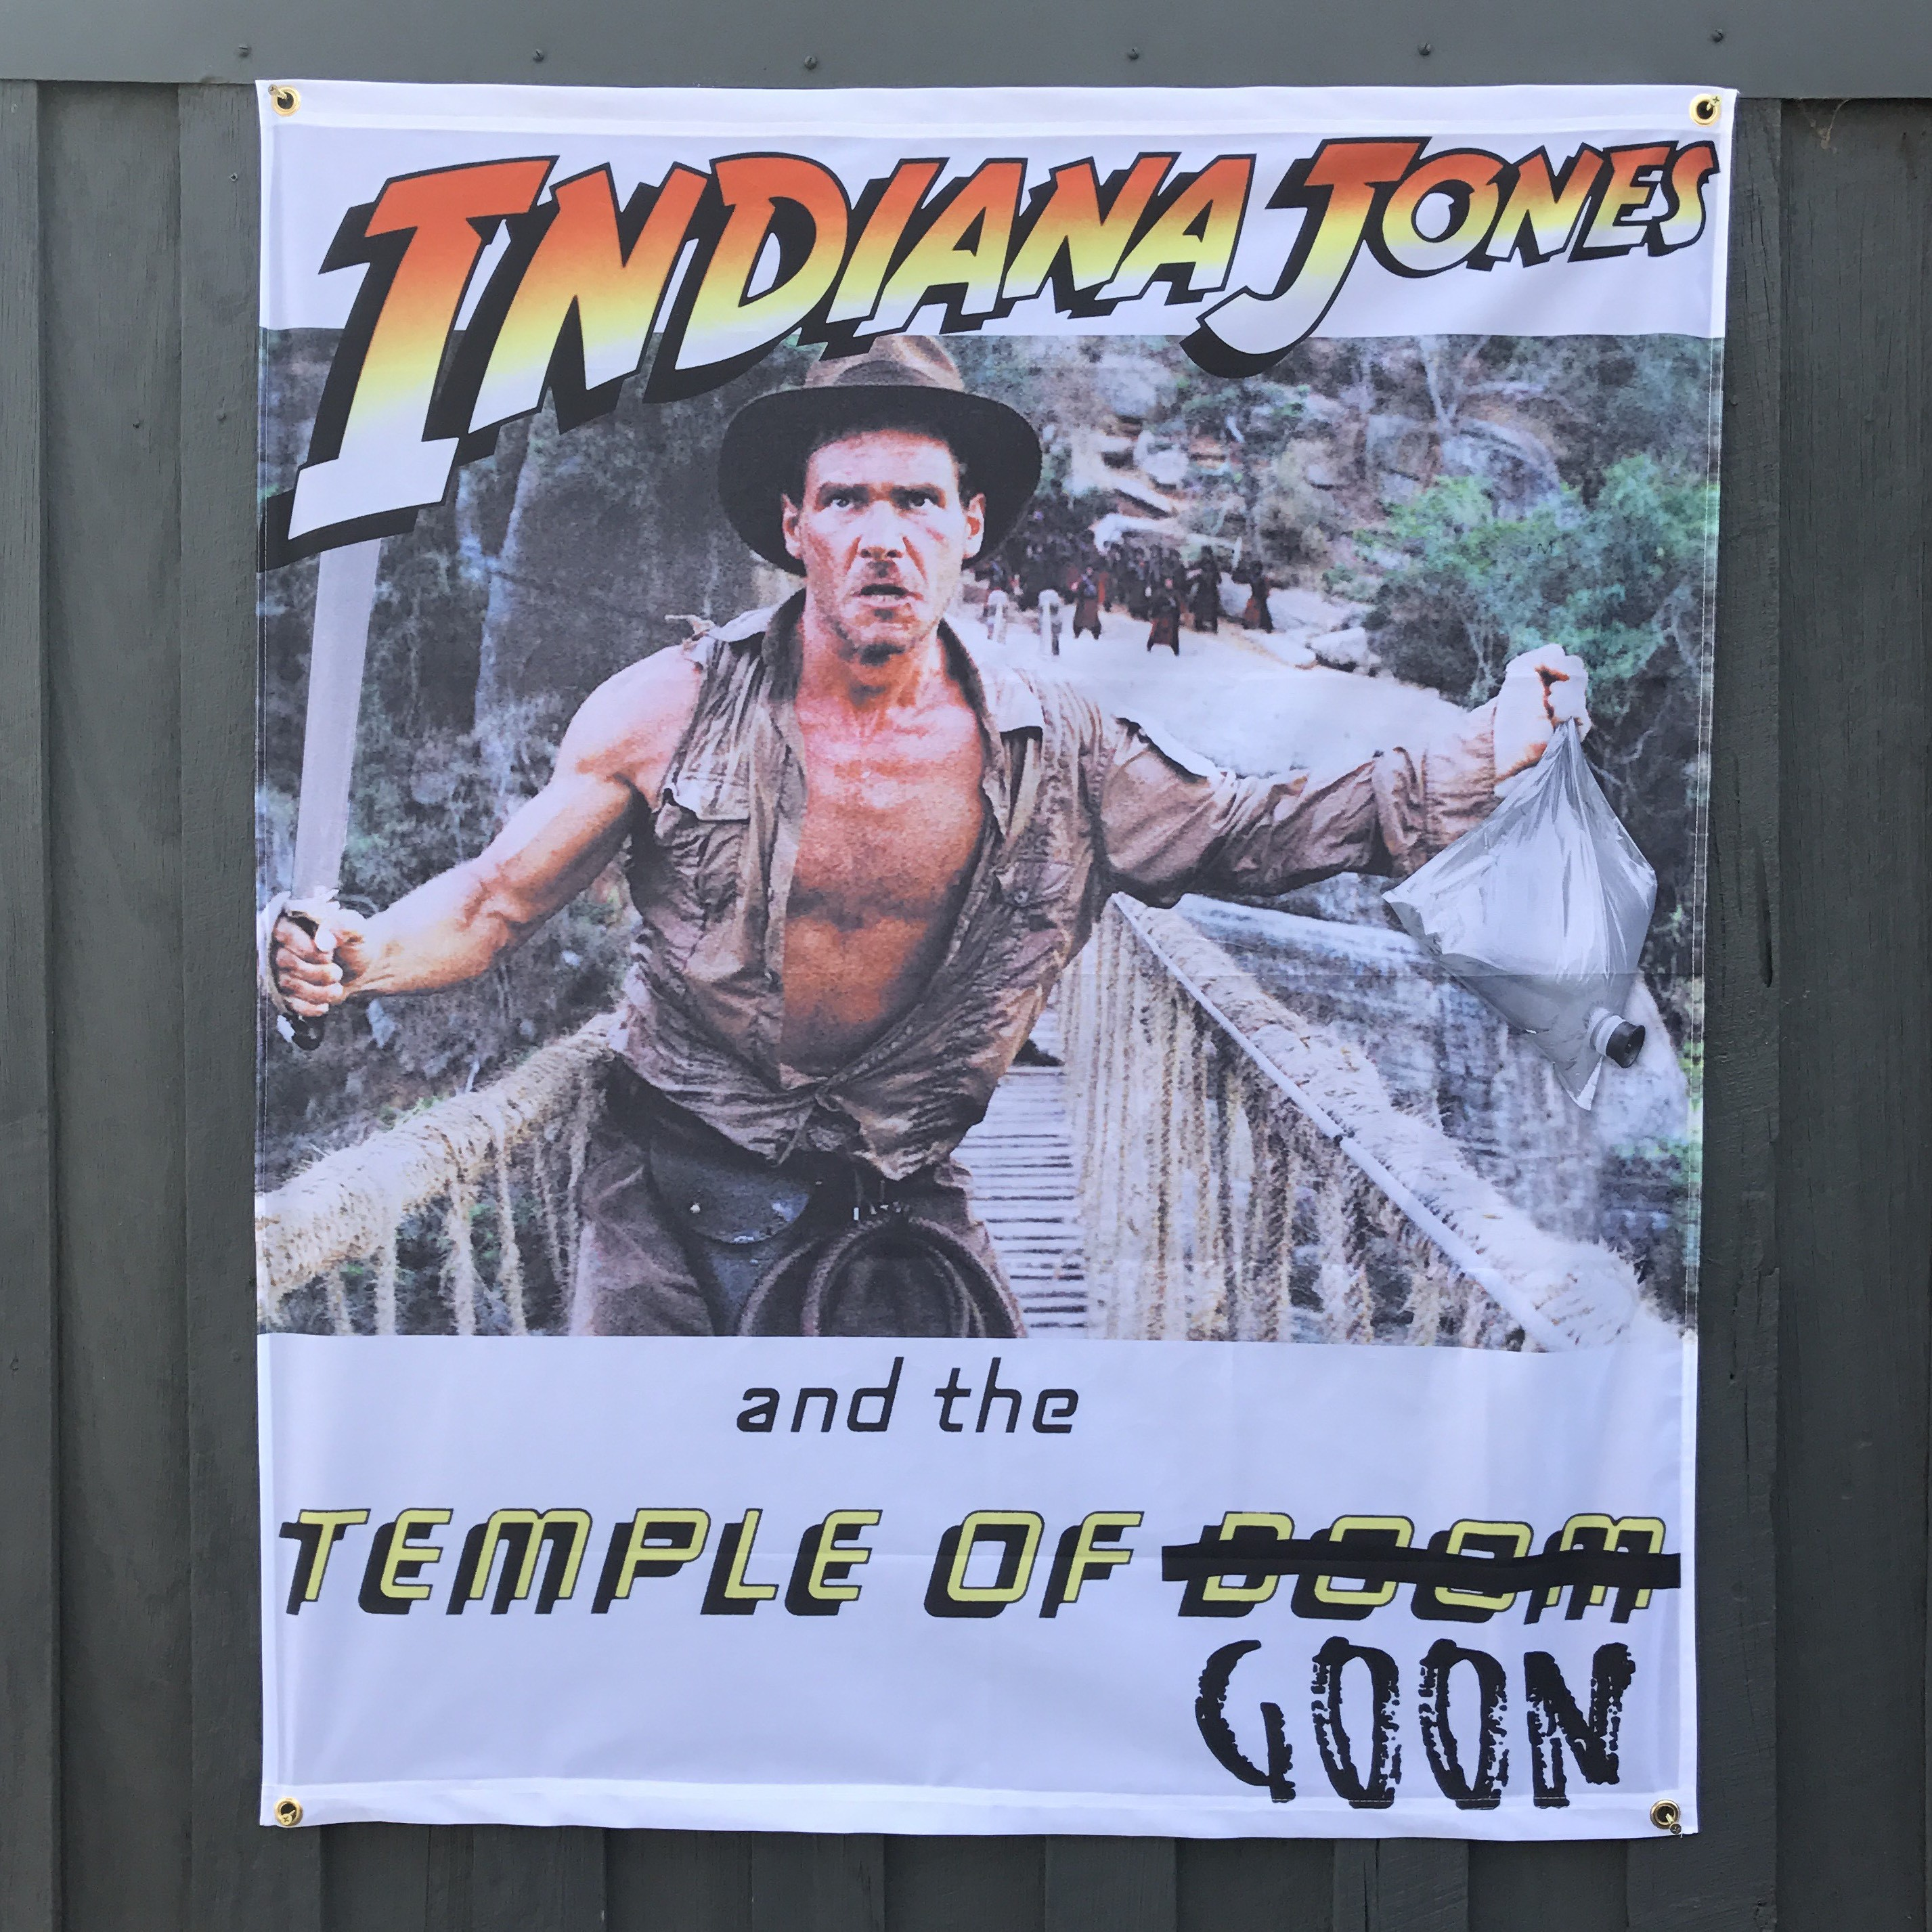 TEMPLE OF GOON WALL HANGING 1000 x 1200MM